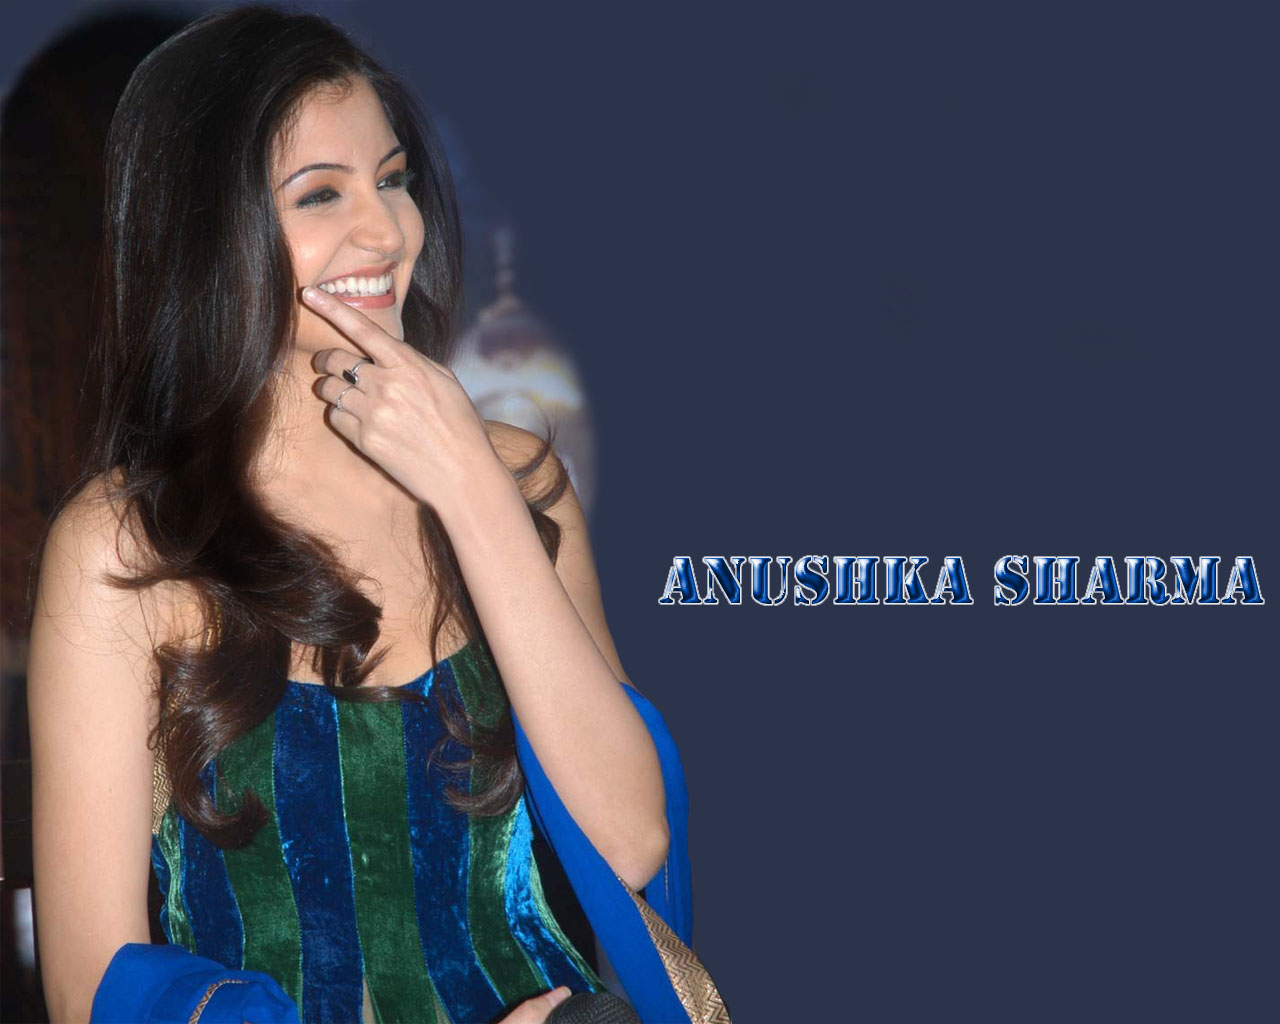 Anushka Sharma Wallpapers: Anushka Sharma Wallpaper Pack 5